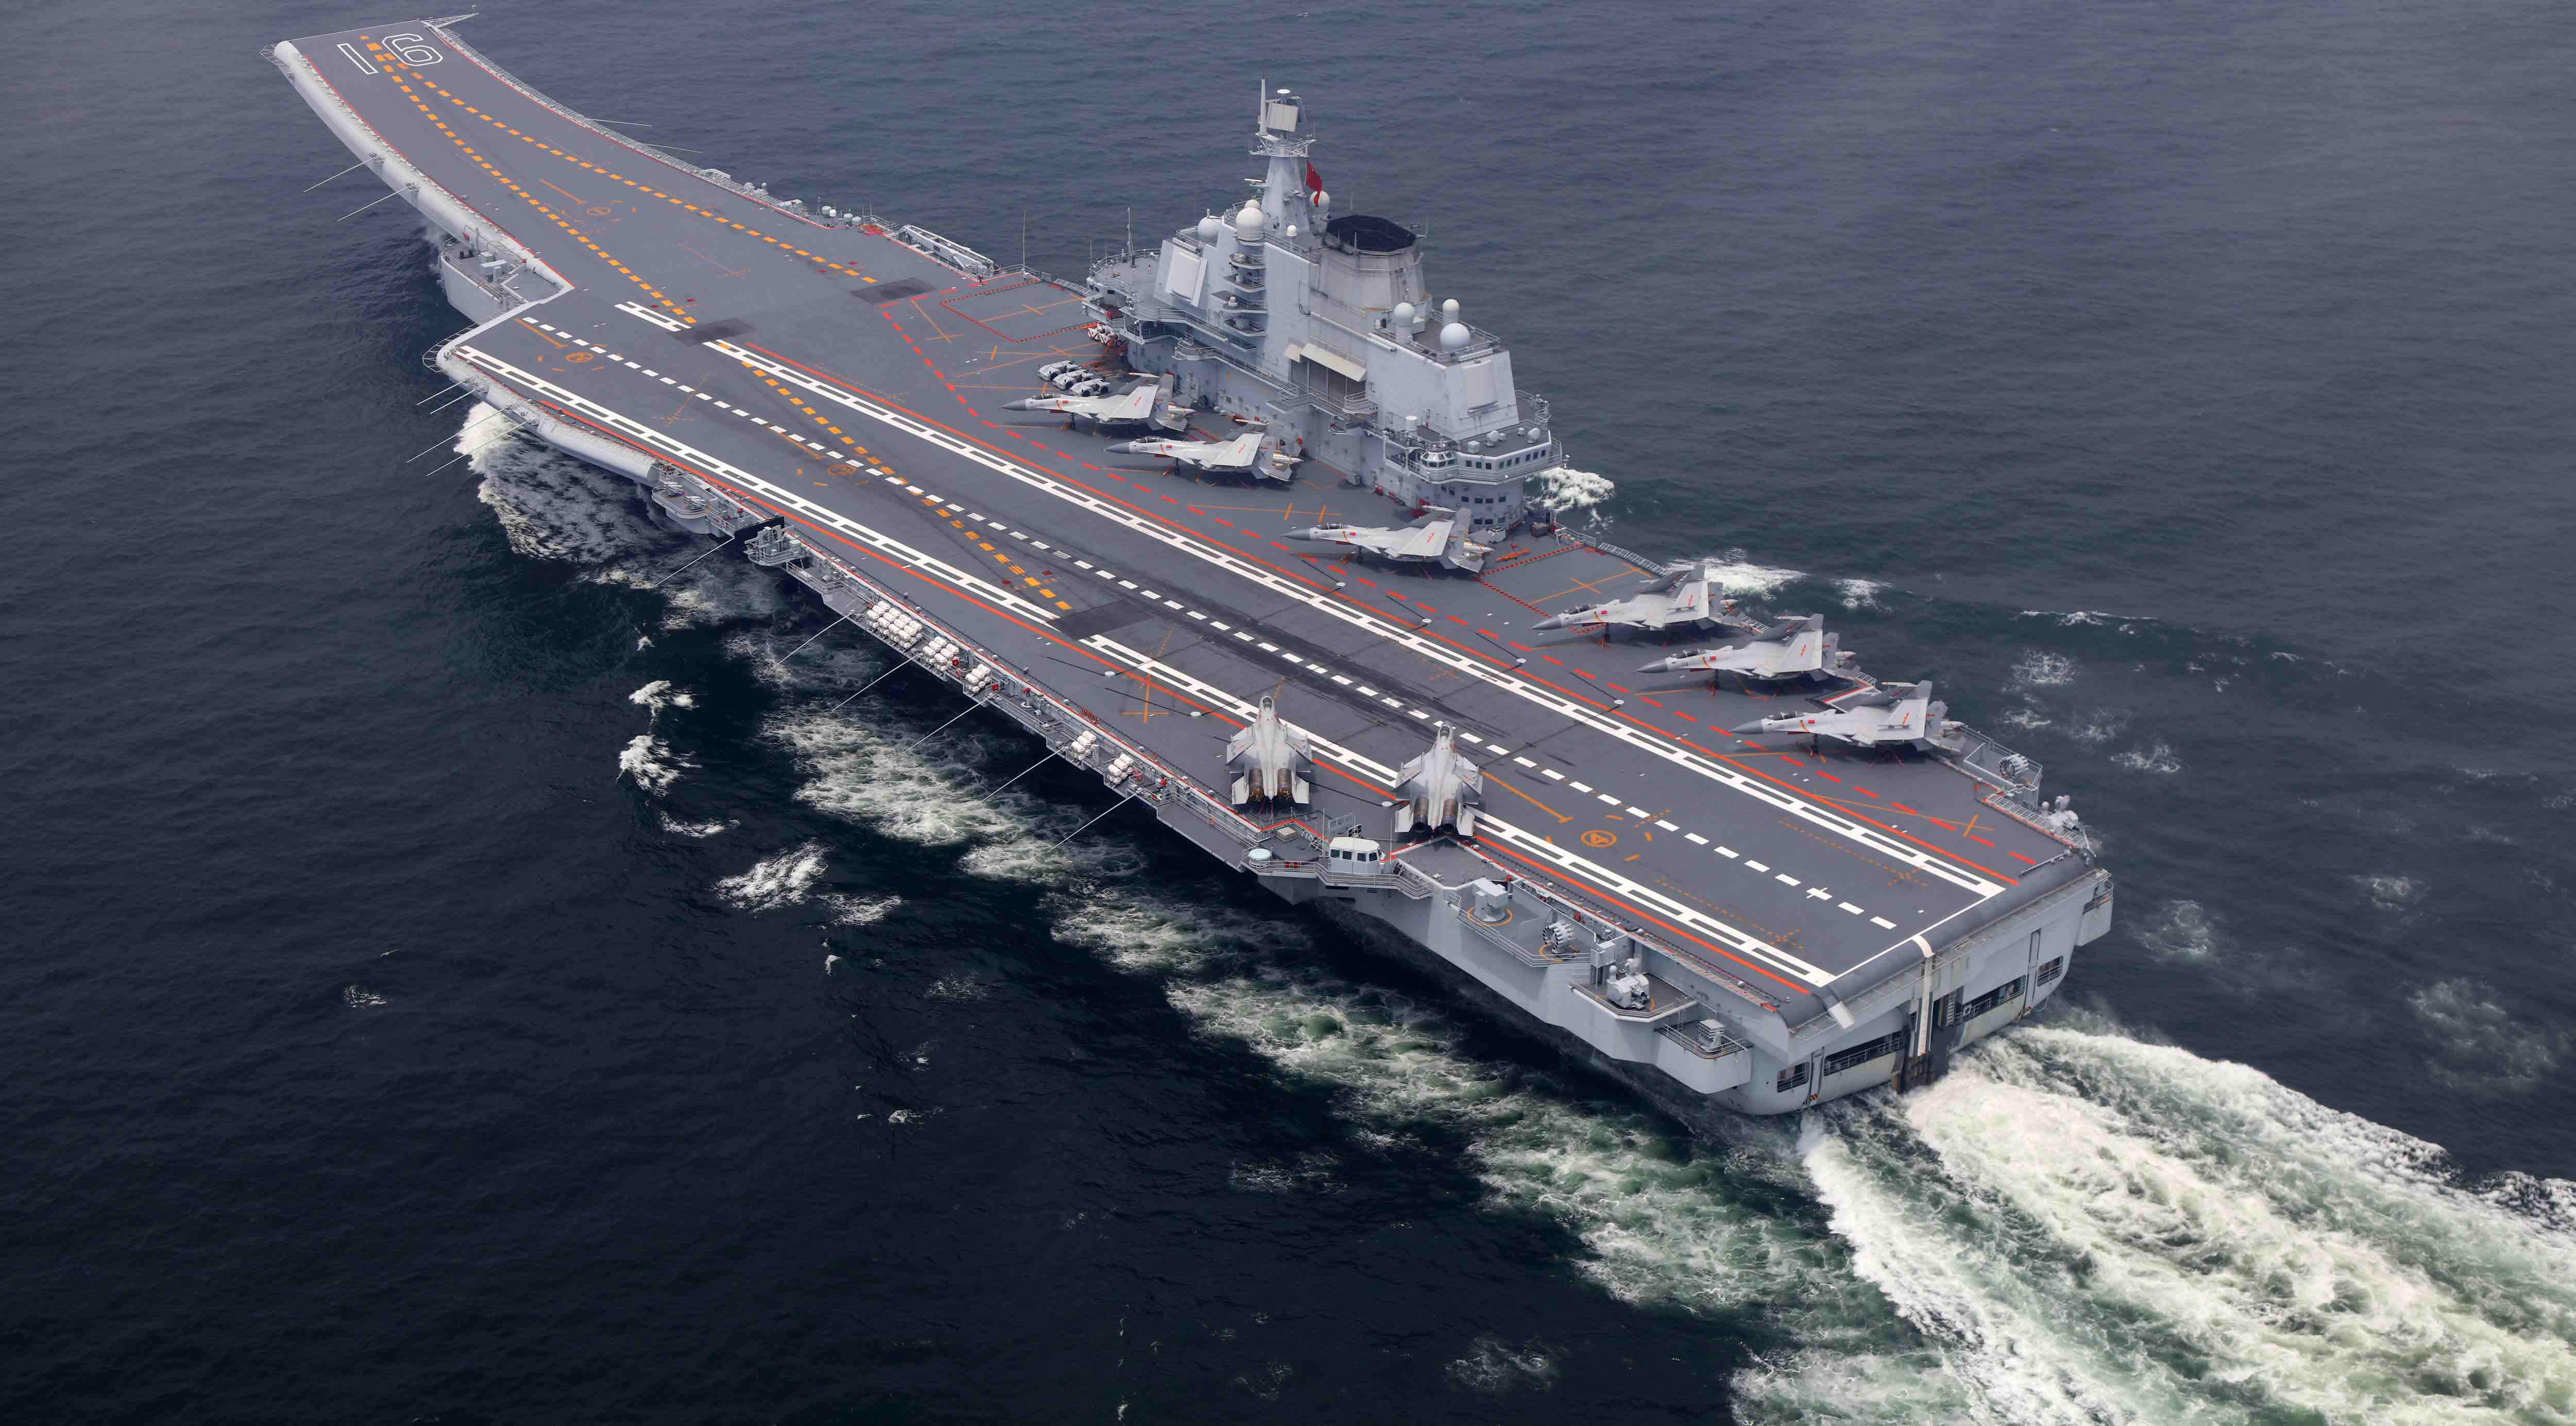 Chinese Aircraft Carrier Liaoning during a training mission in July 2017 (Photo: VCG via Getty)